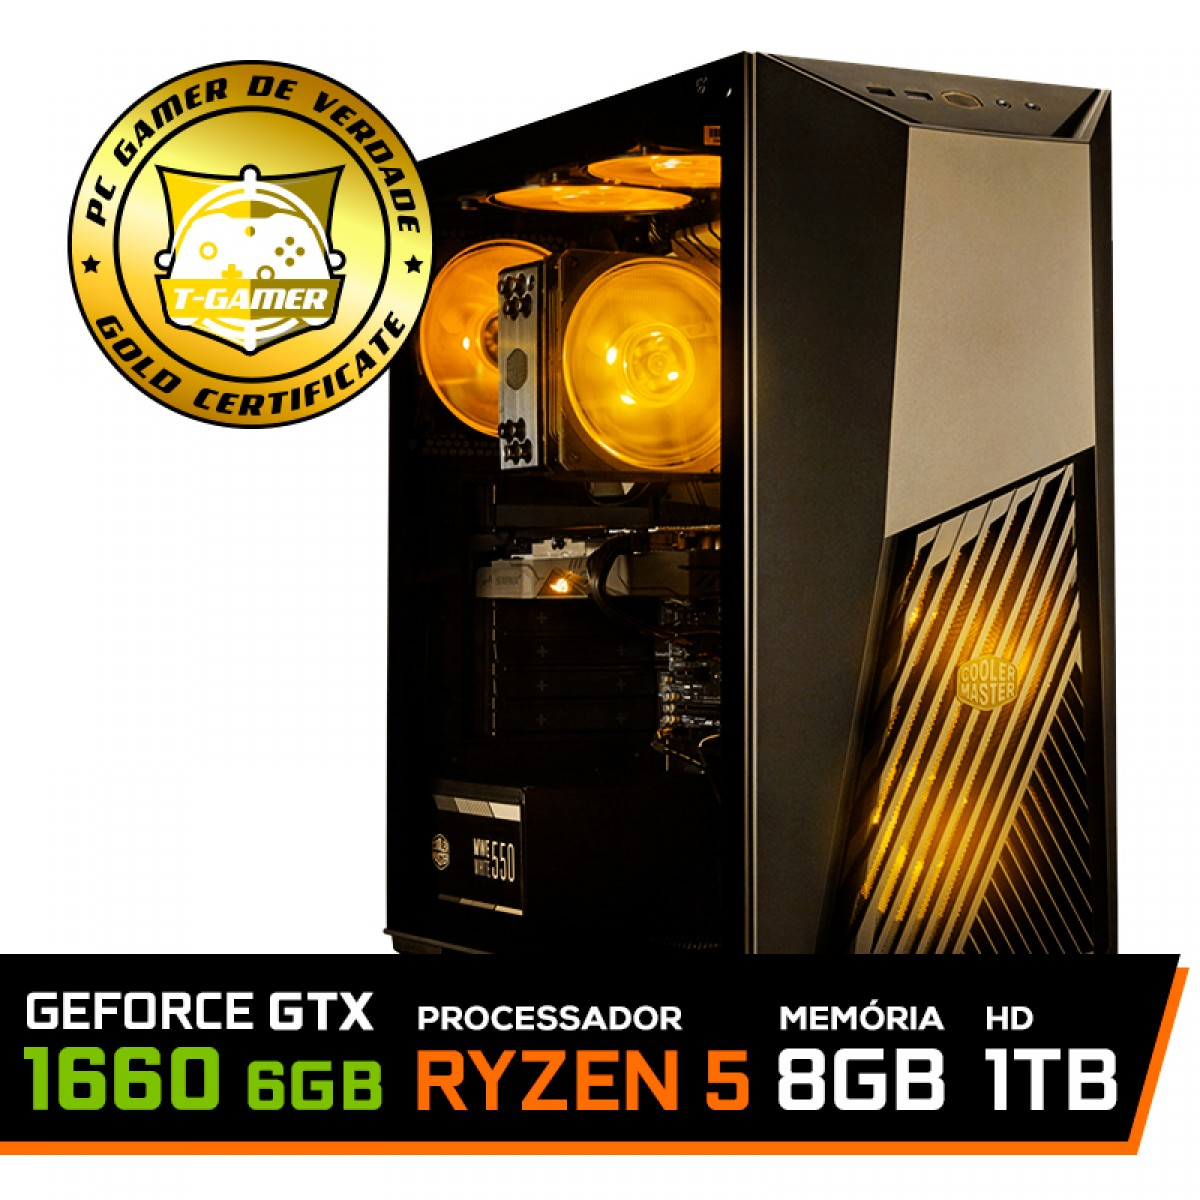 Pc Gamer TUF Edition Amd Ryzen 5 3600 / GeForce GTX 1660 6GB / DDR4 8GB / HD 1TB / 550W